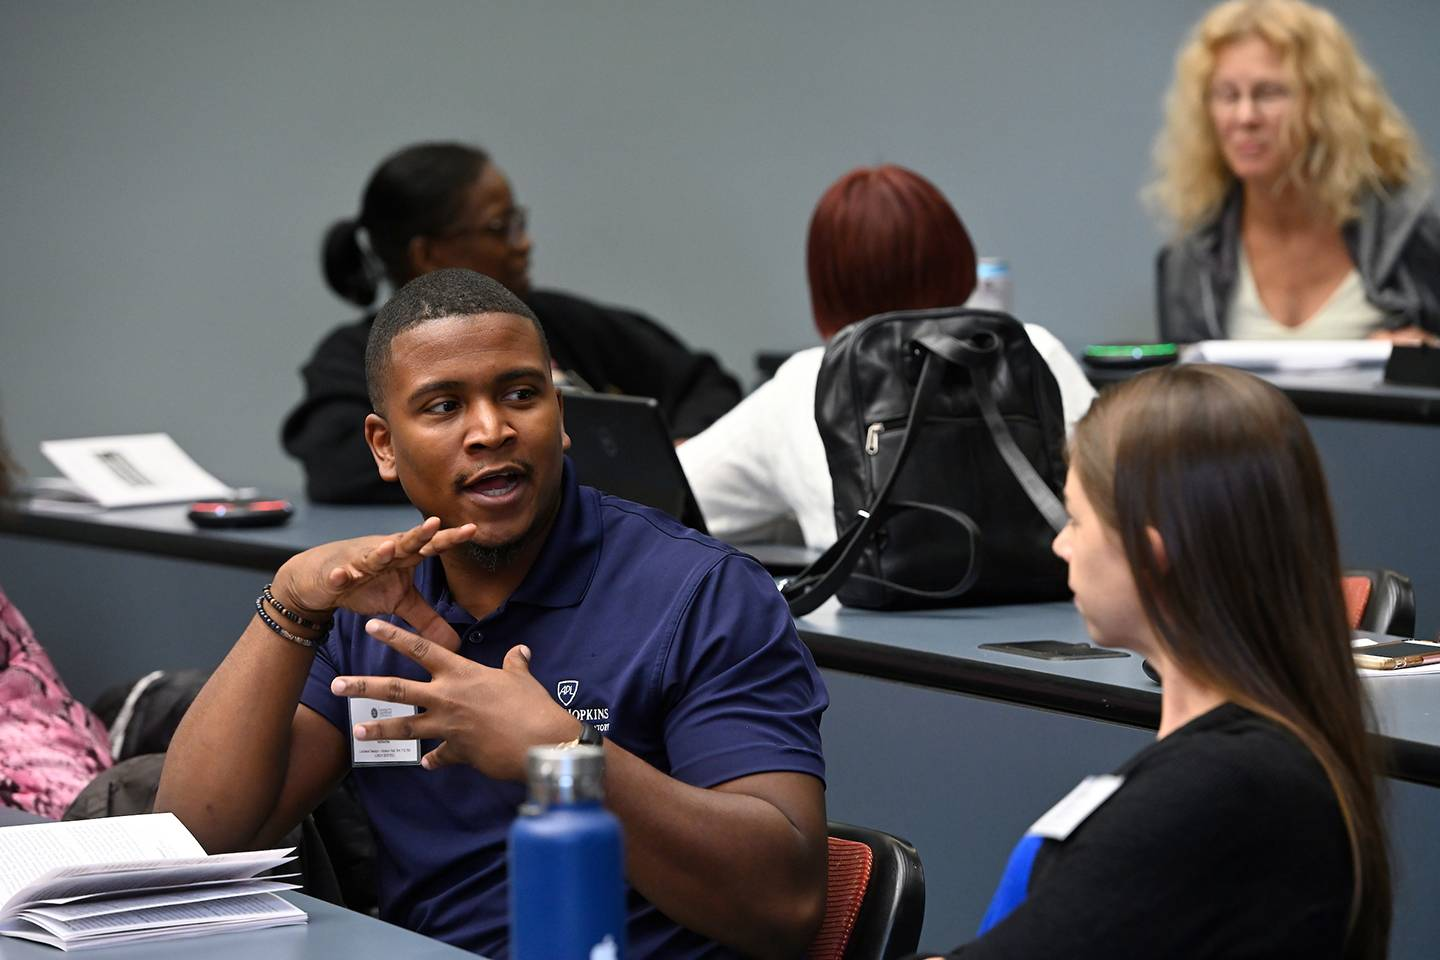 Workshop participants discuss during Diversity and Inclusion Conference